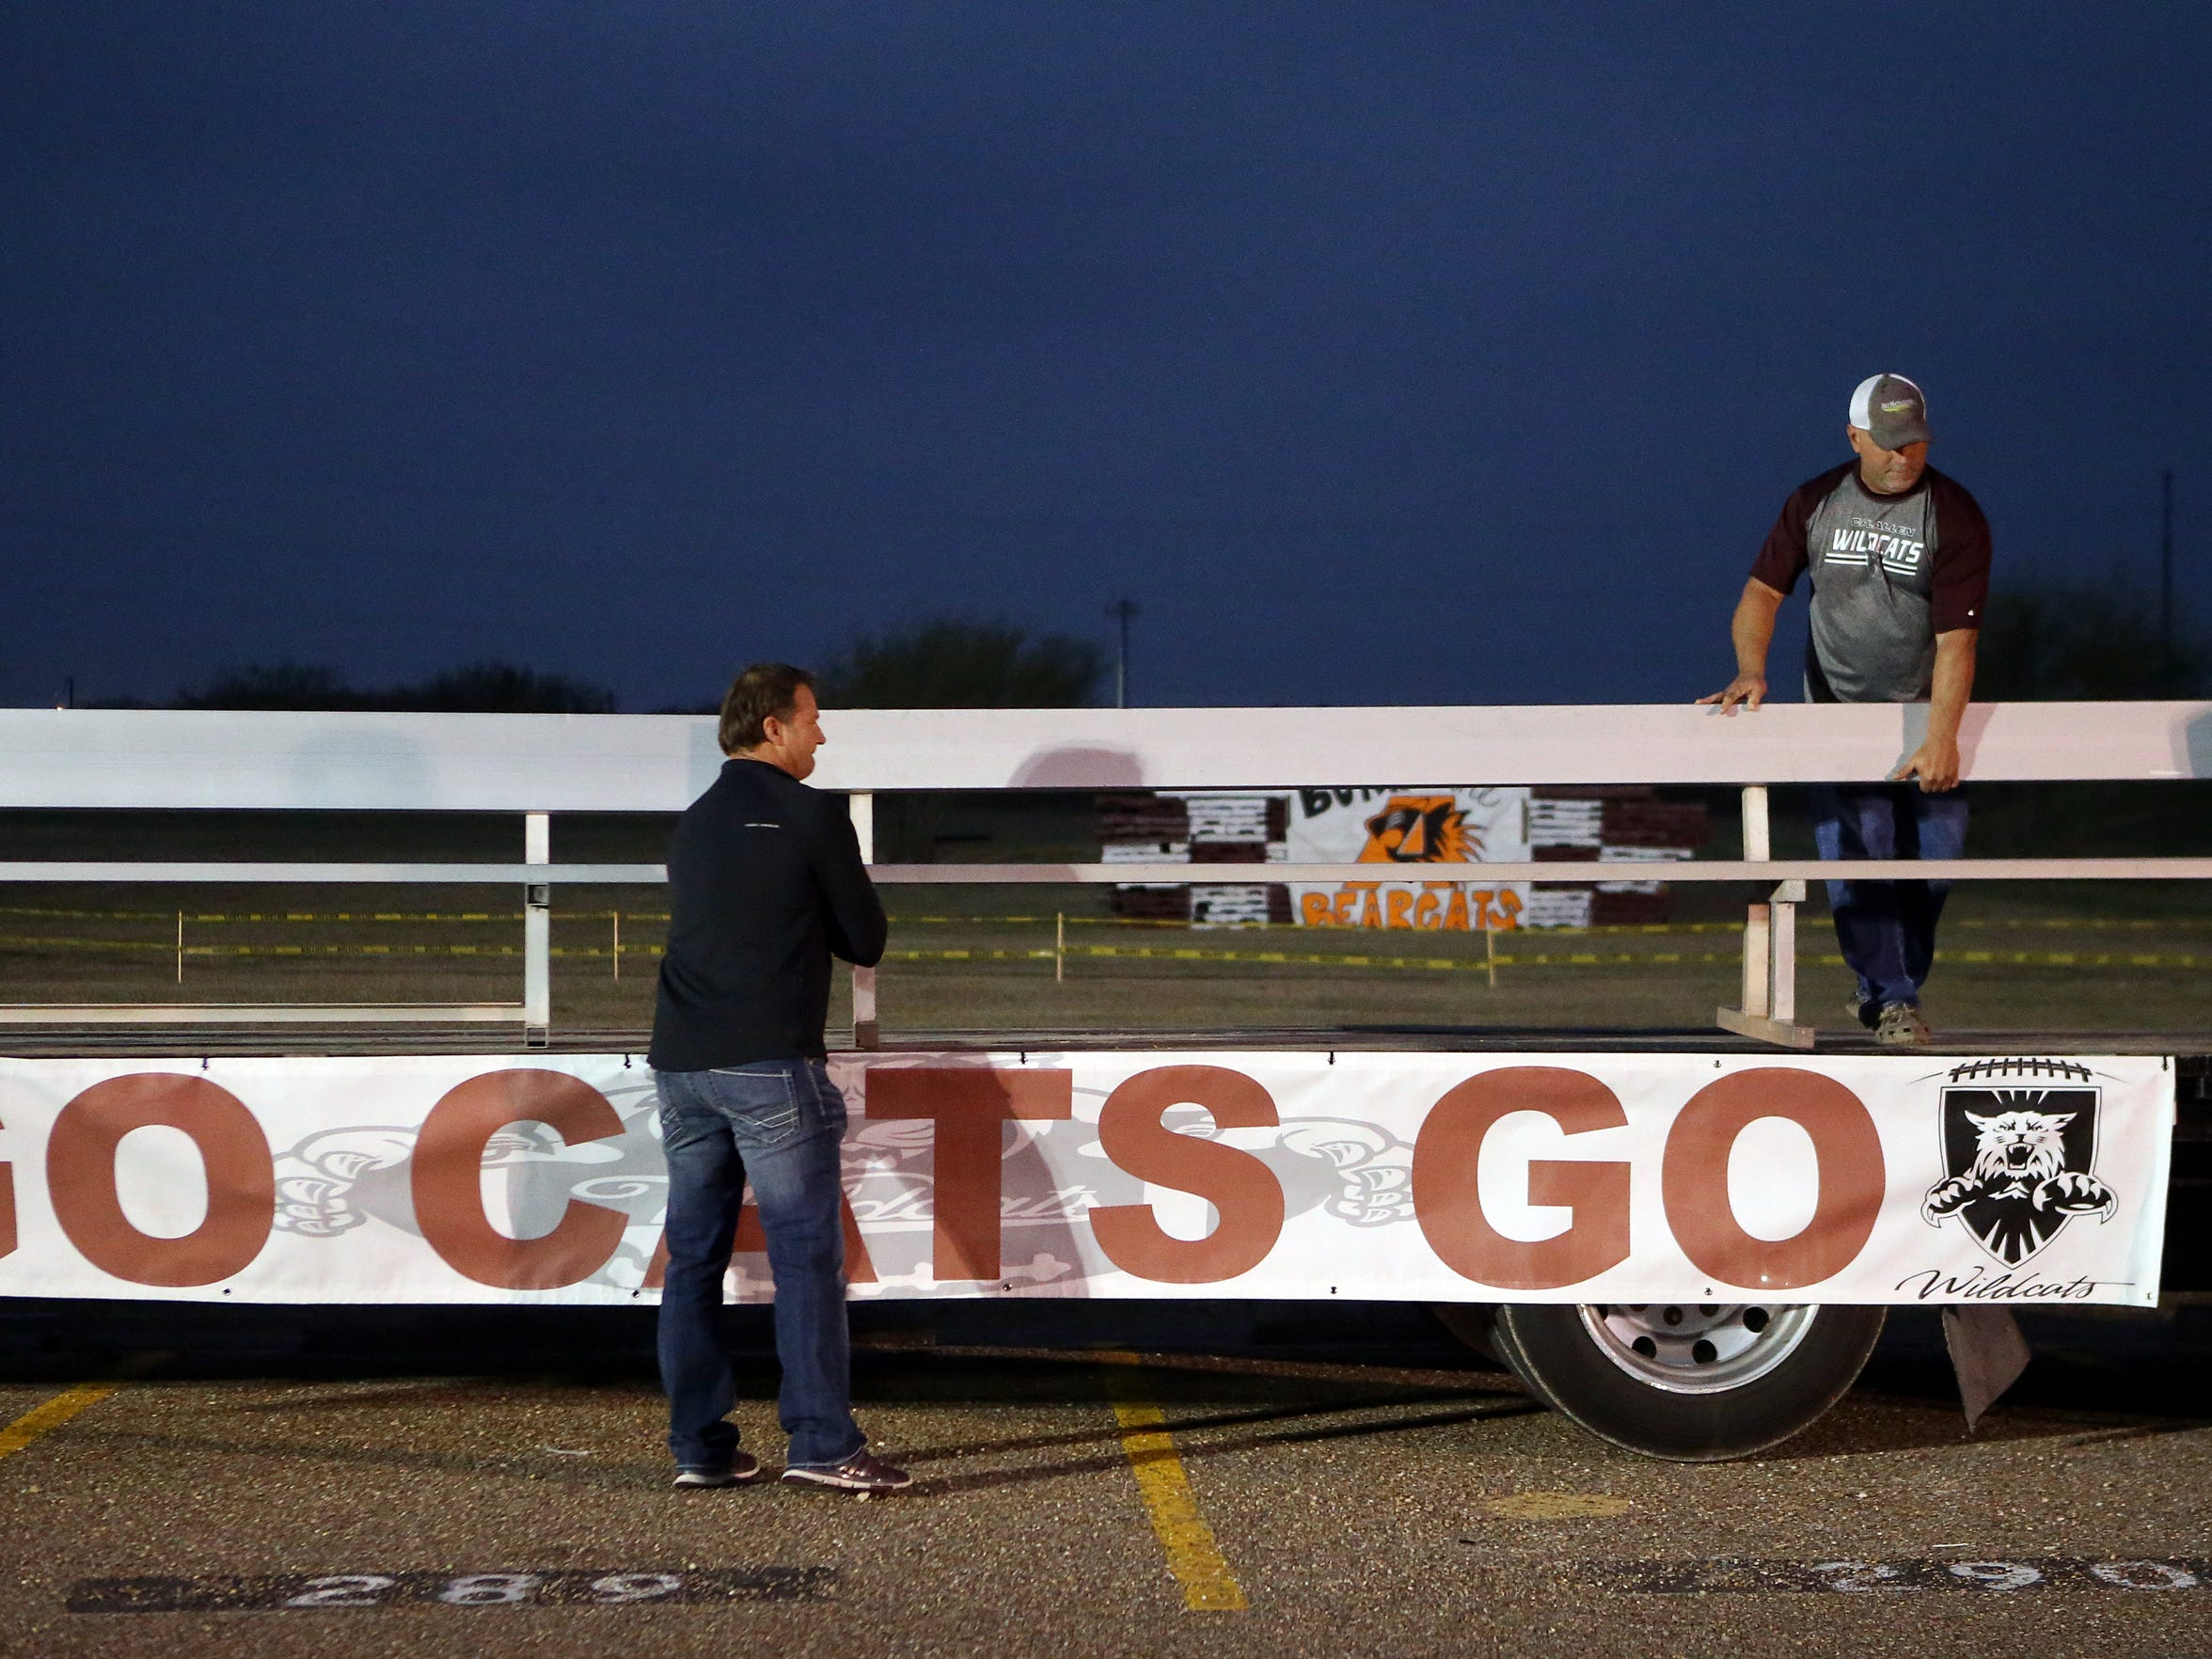 Calallen Booster Cub members Lawrence Mann (left) and Marcus Darbonne adjust bleachers as they prepare for a community pep rally Dec. 14, 2016, at Calallen High School in Corpus Christi. Calallen will be playing Aledo High School for the Class 5A Division II State Championship on Friday.